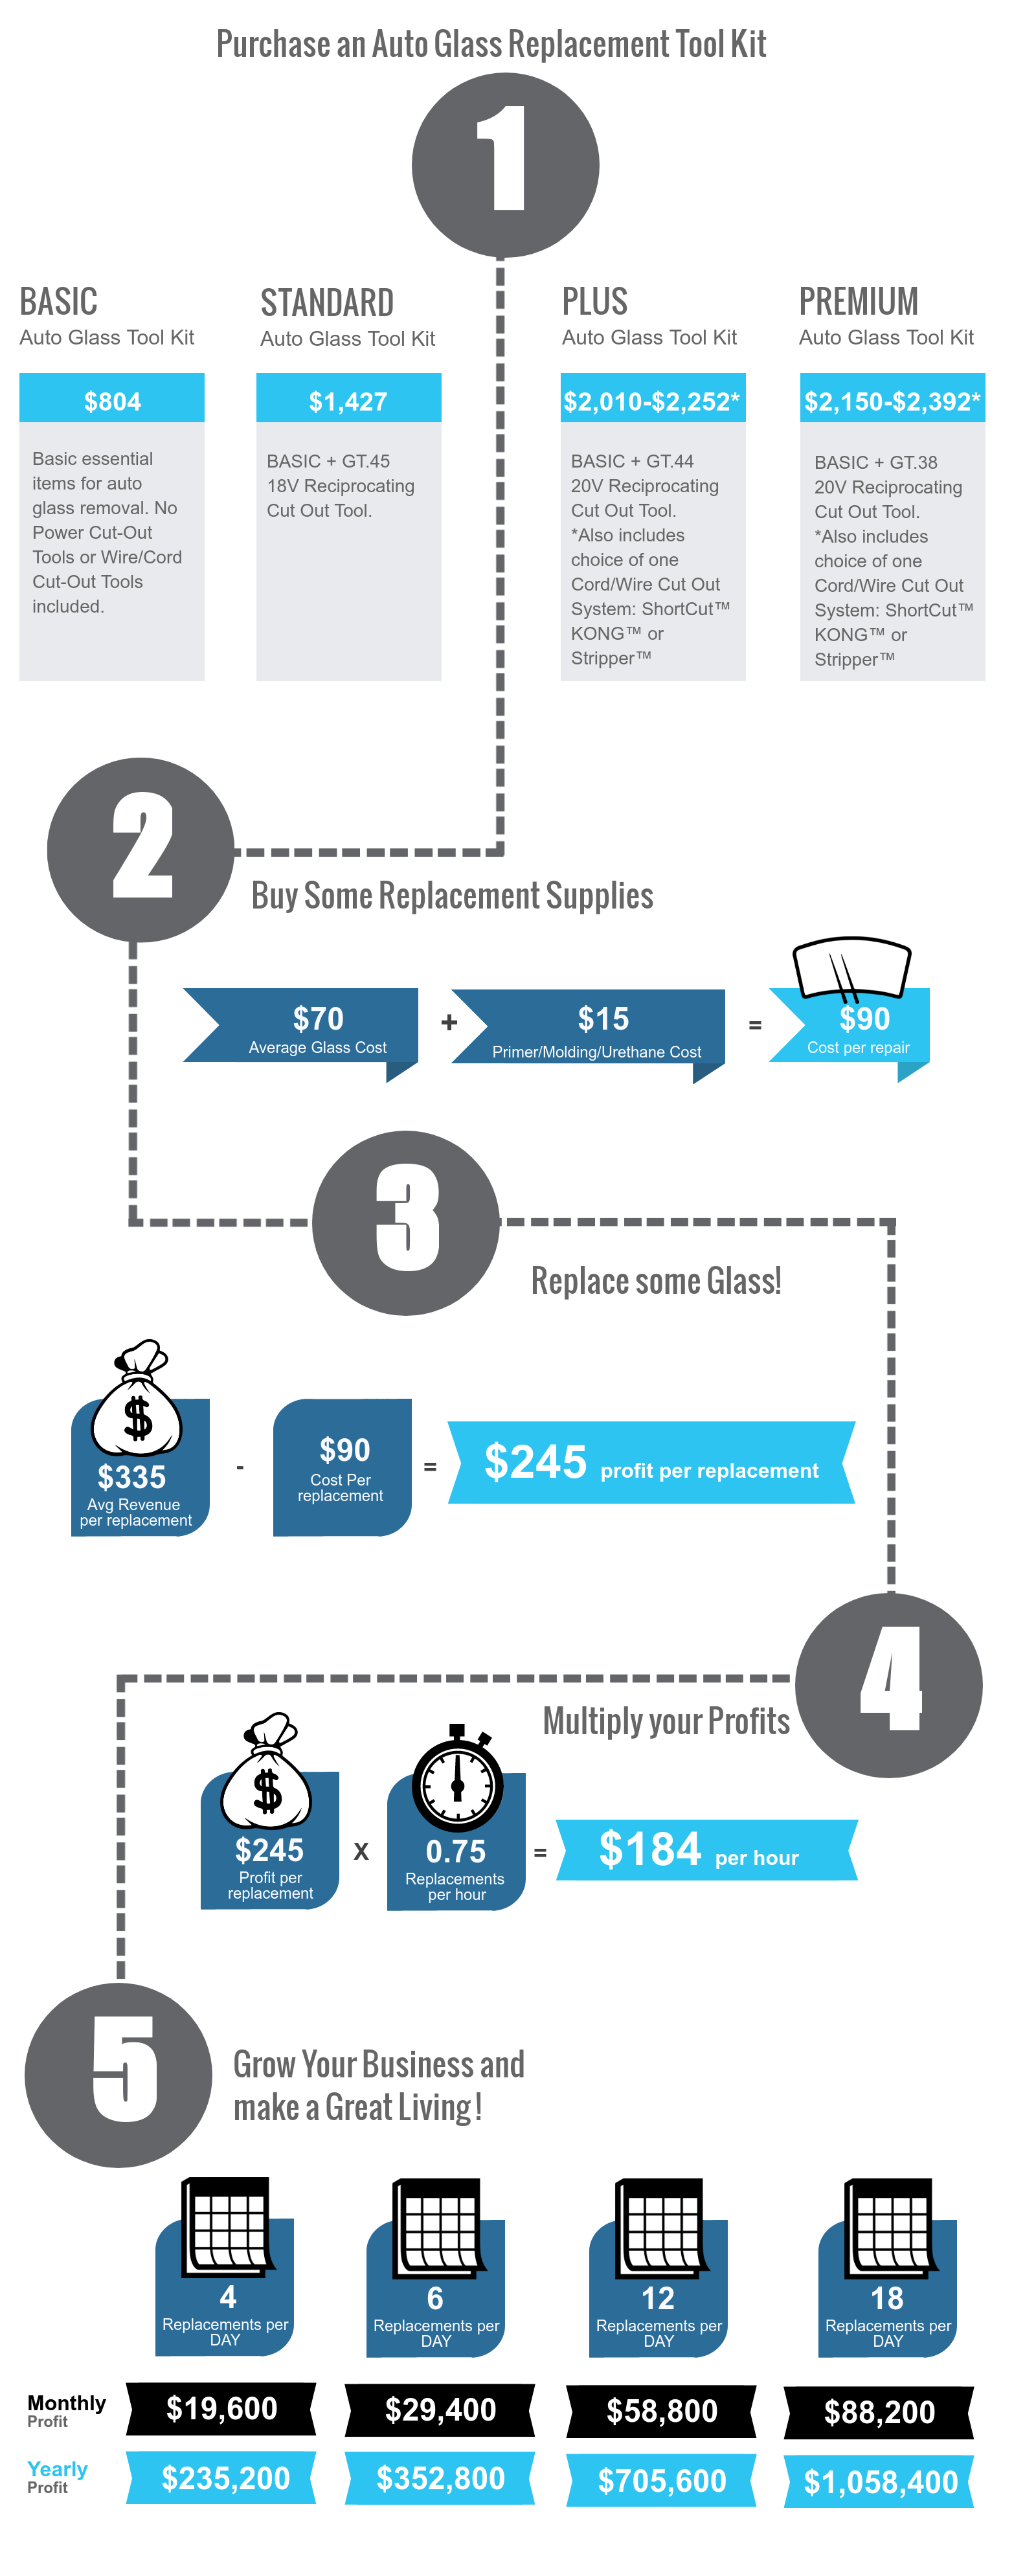 Auto Glass Replacement Revenue and Profit Potential Infographic